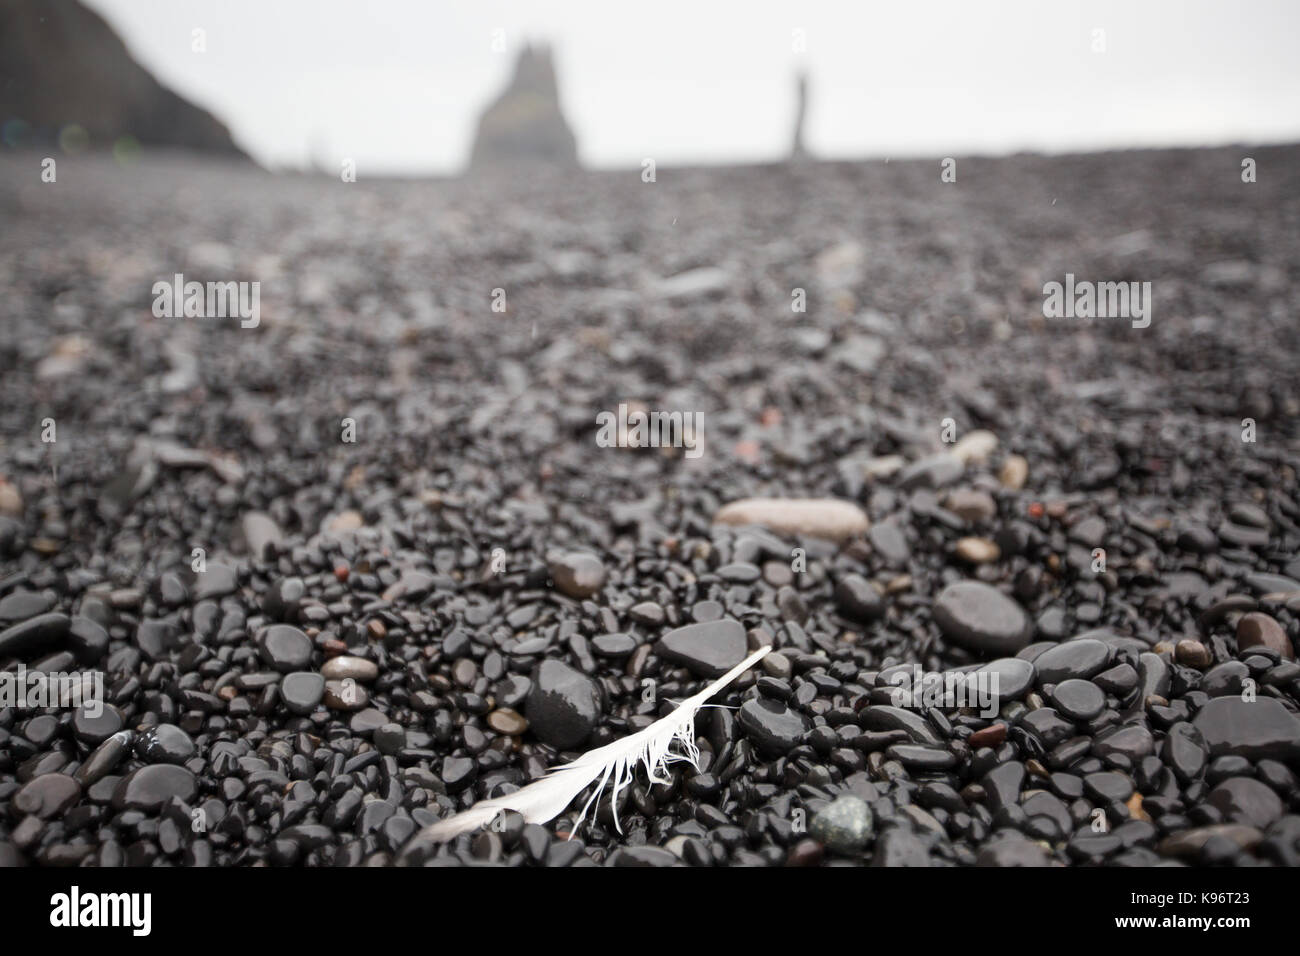 A lone feather rests on a black pebble beach. - Stock Image